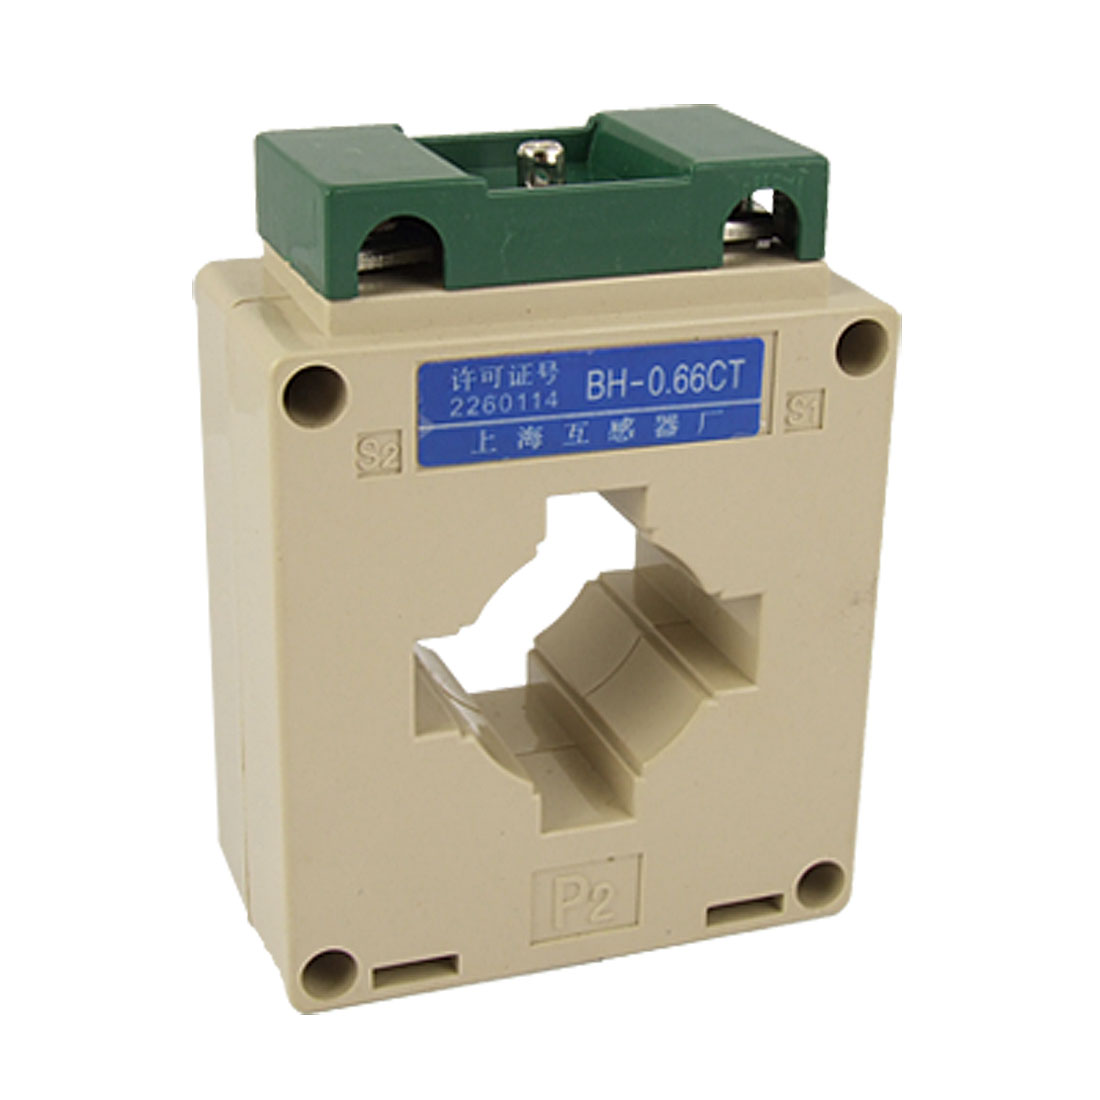 Accuracy Class 0.5 Ratio 500/5 Current Transformer BH-0.66CT